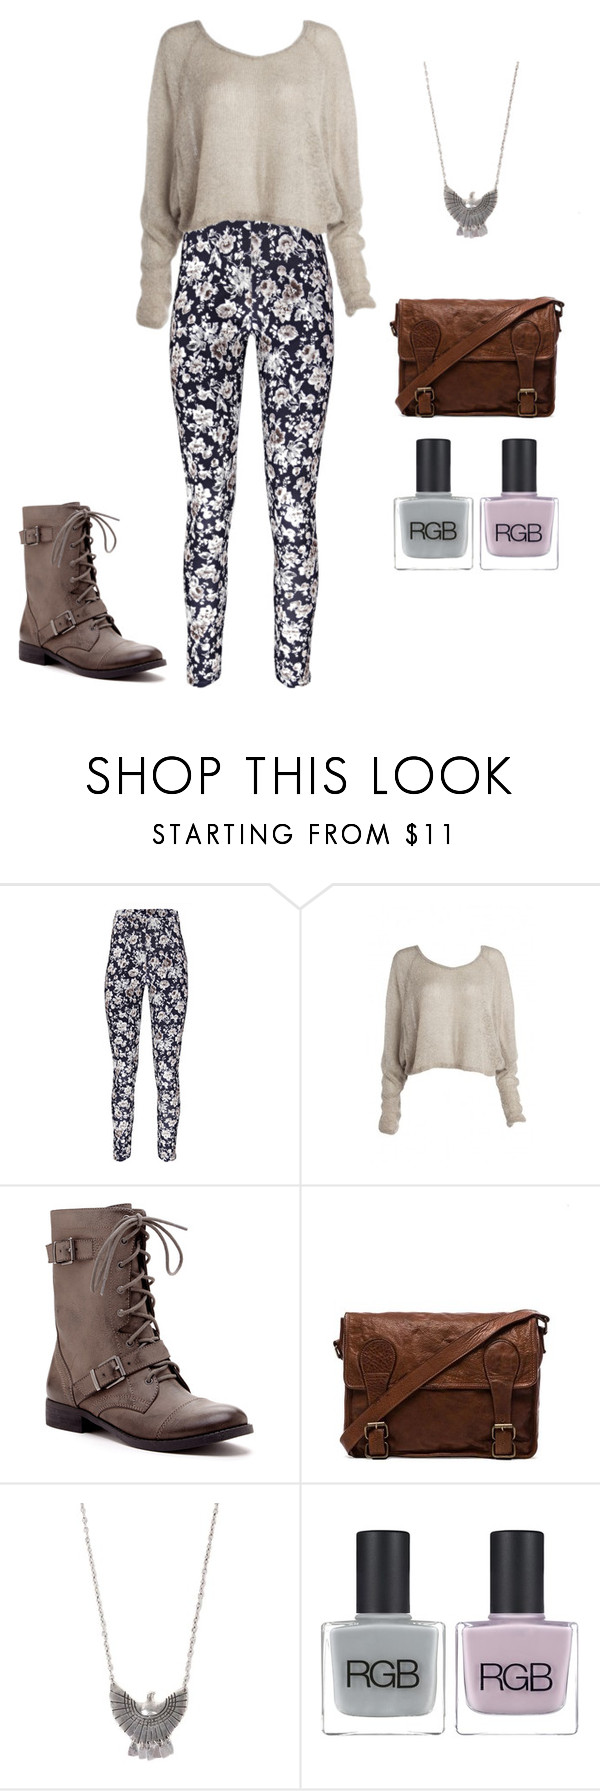 """""""Malia Tate Inspired Birthday Outfit"""" by nicklechalupnik ❤ liked on Polyvore featuring Boohoo, Sole Society, VIPARO, With Love From CA and RGB"""